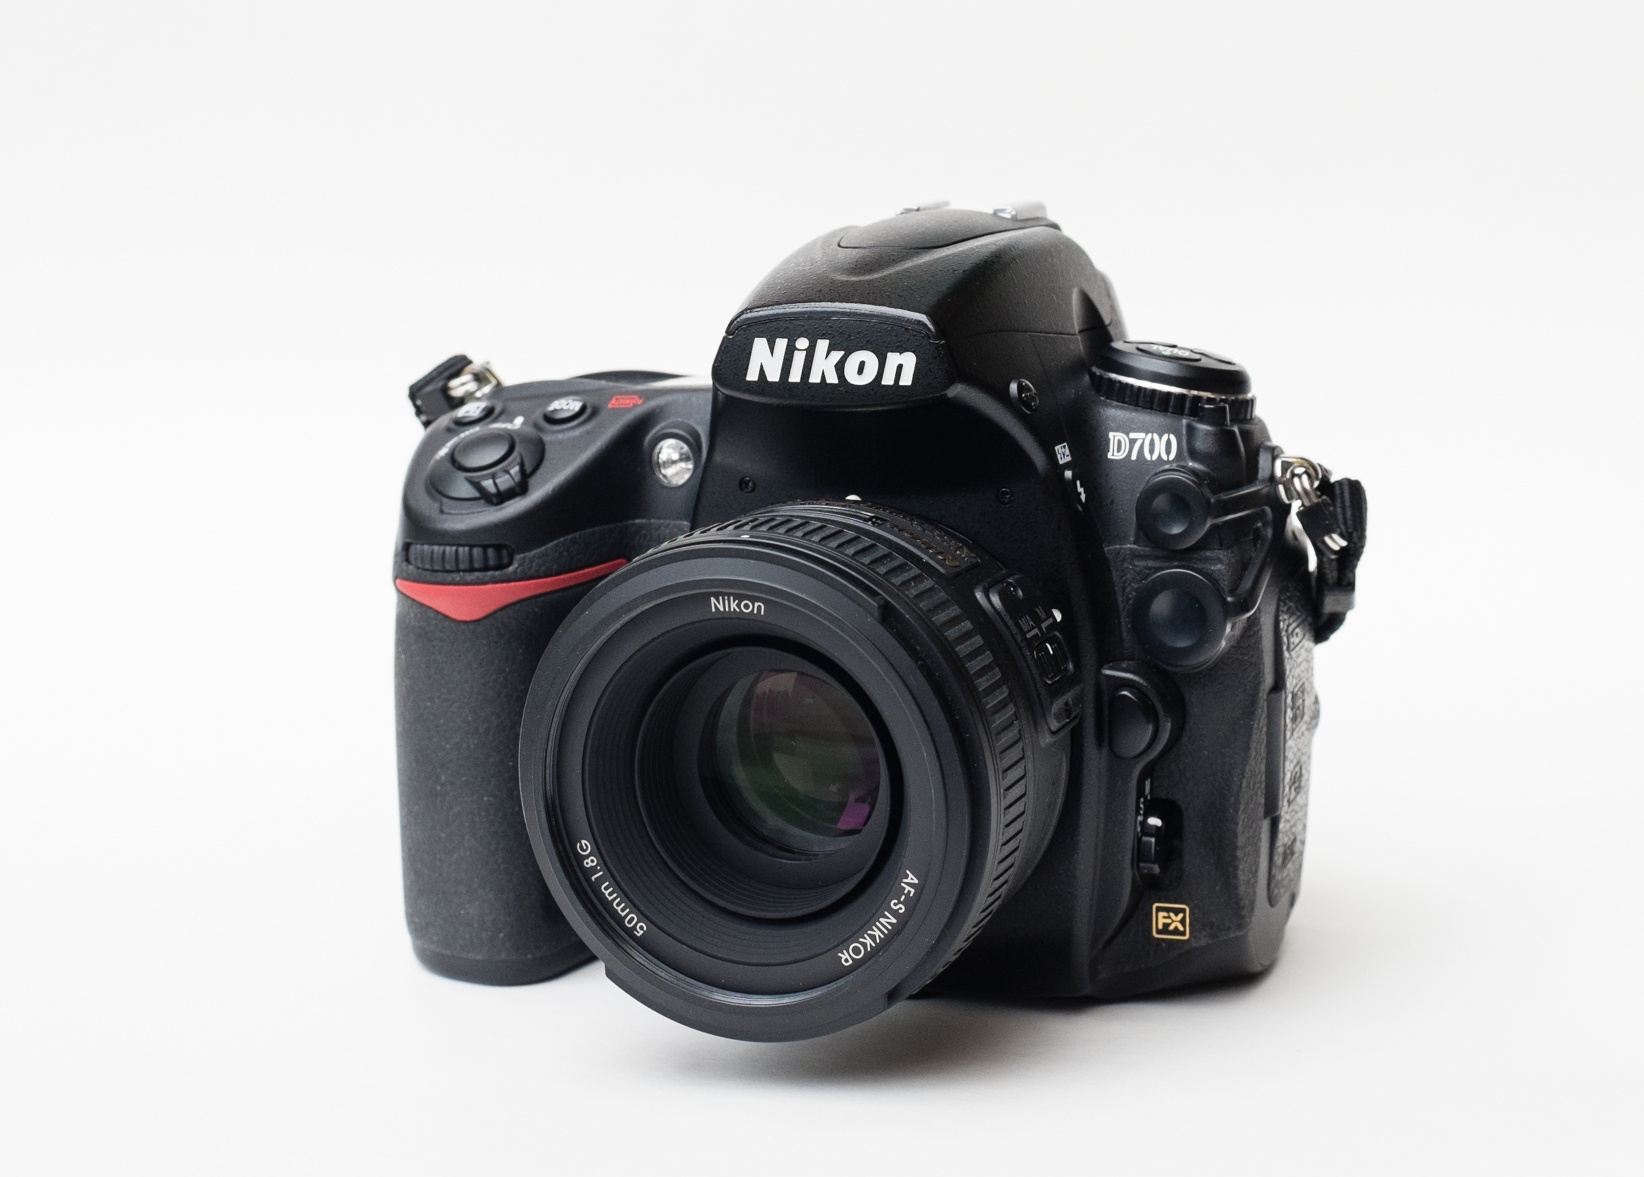 A Nikon D700 with 50mm f1.8 lens